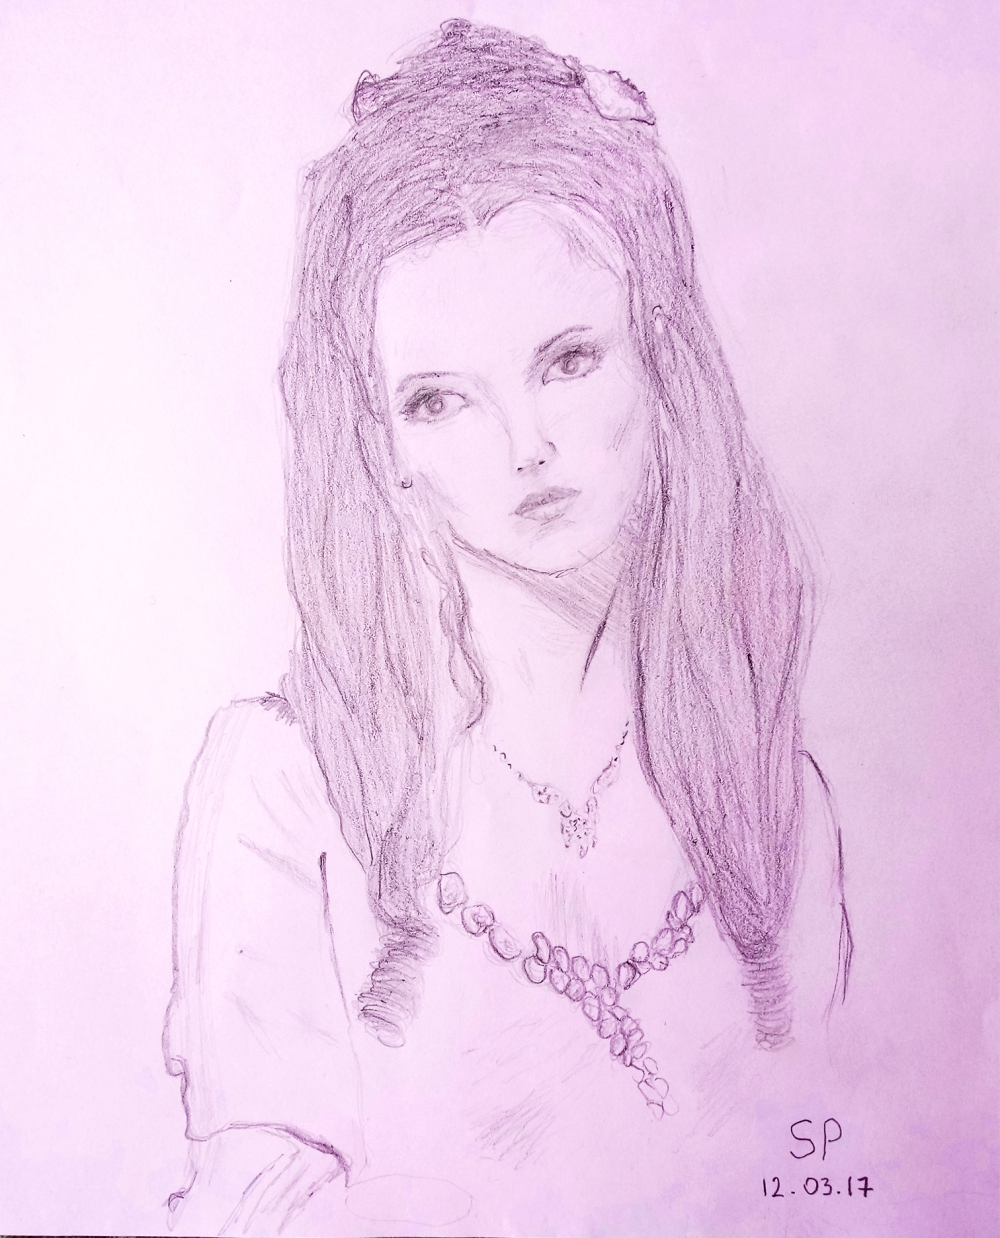 portrait drawing sp.jpg